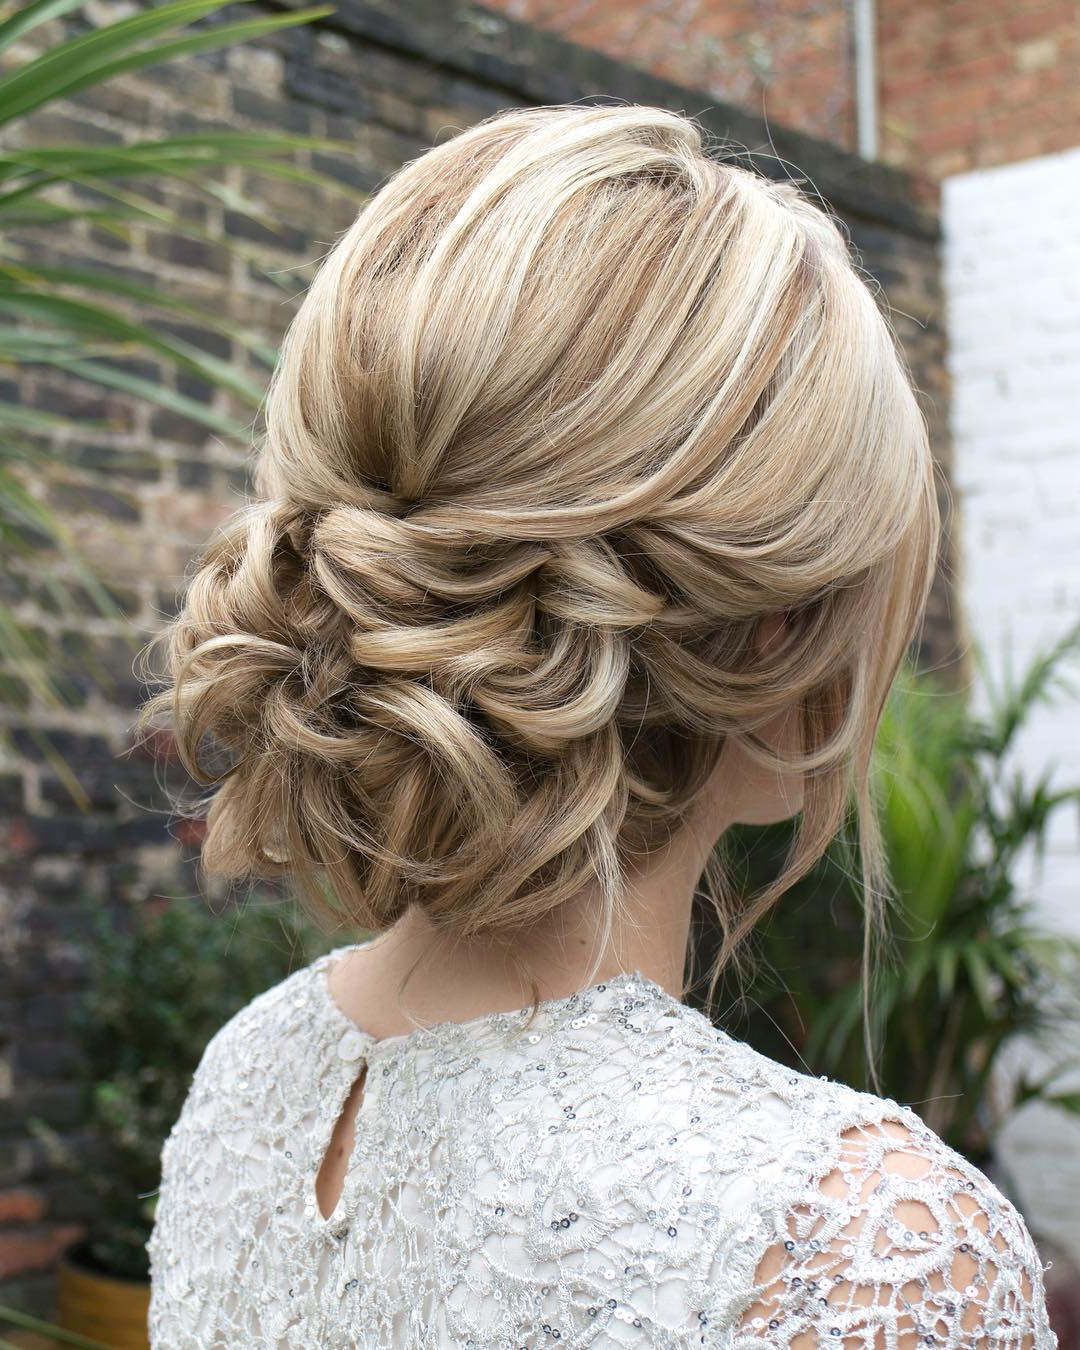 2018 Twisted Low Bun Hairstyles For Prom Within 10 Gorgeous Prom Updos For Long Hair, Prom Updo Hairstyles (View 14 of 20)